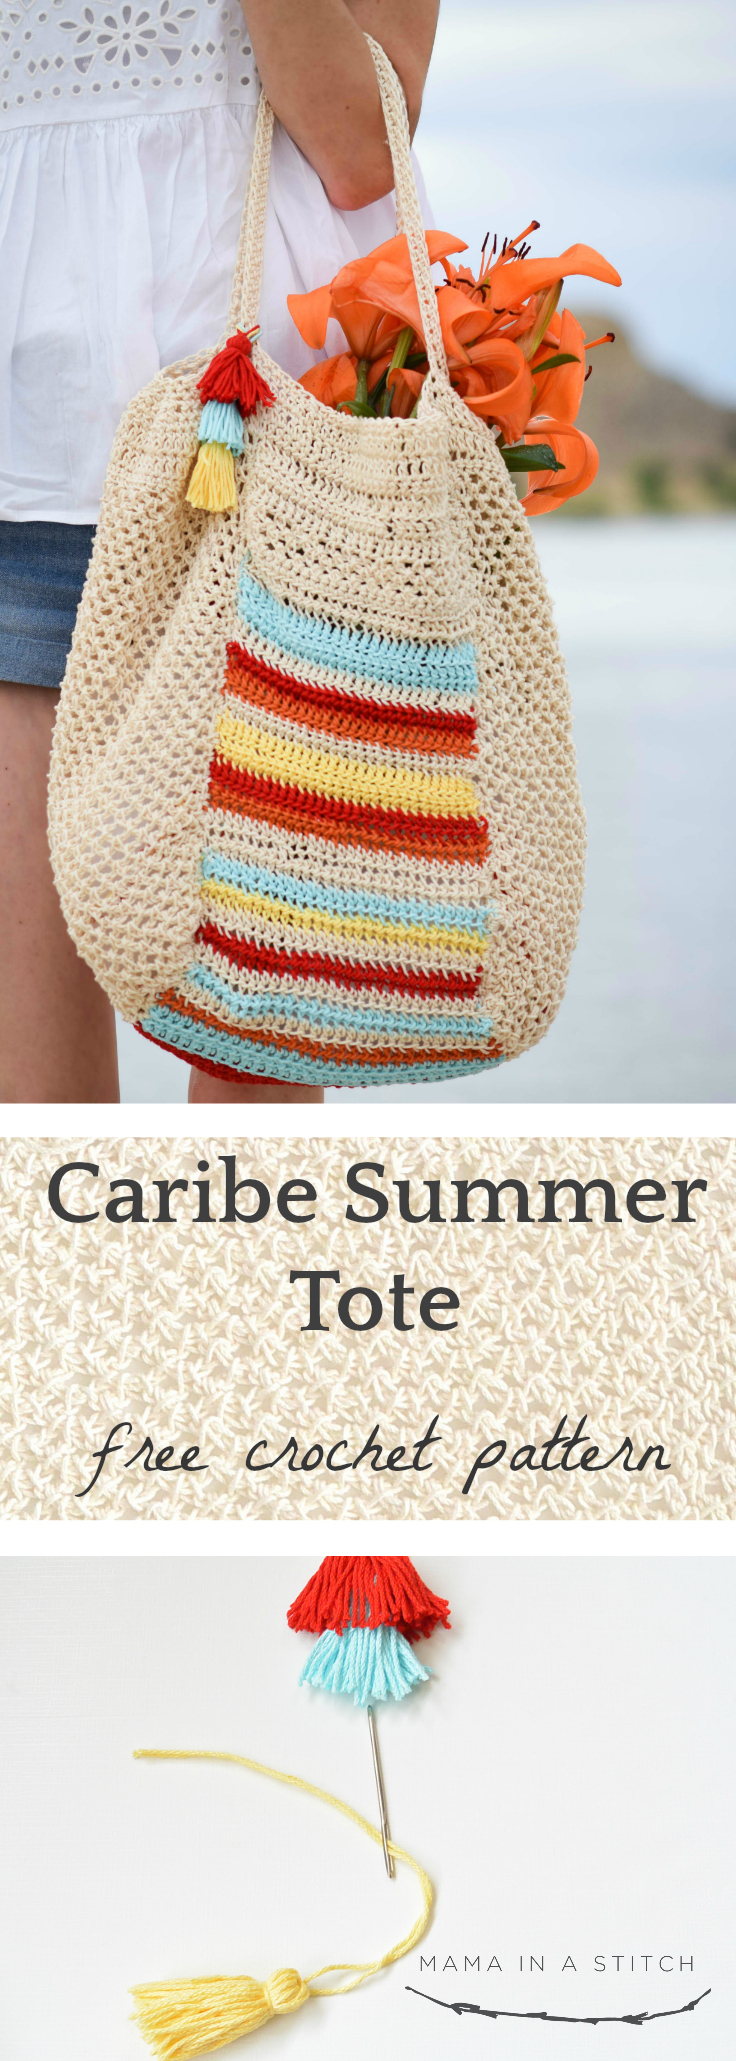 This big bag can hold all my summer stuff! It's so cute and there's a picture tutorial to show you how it's crocheted. Free, easy crochet pattern available.  #crochetpattern #diy #summer #totepattern